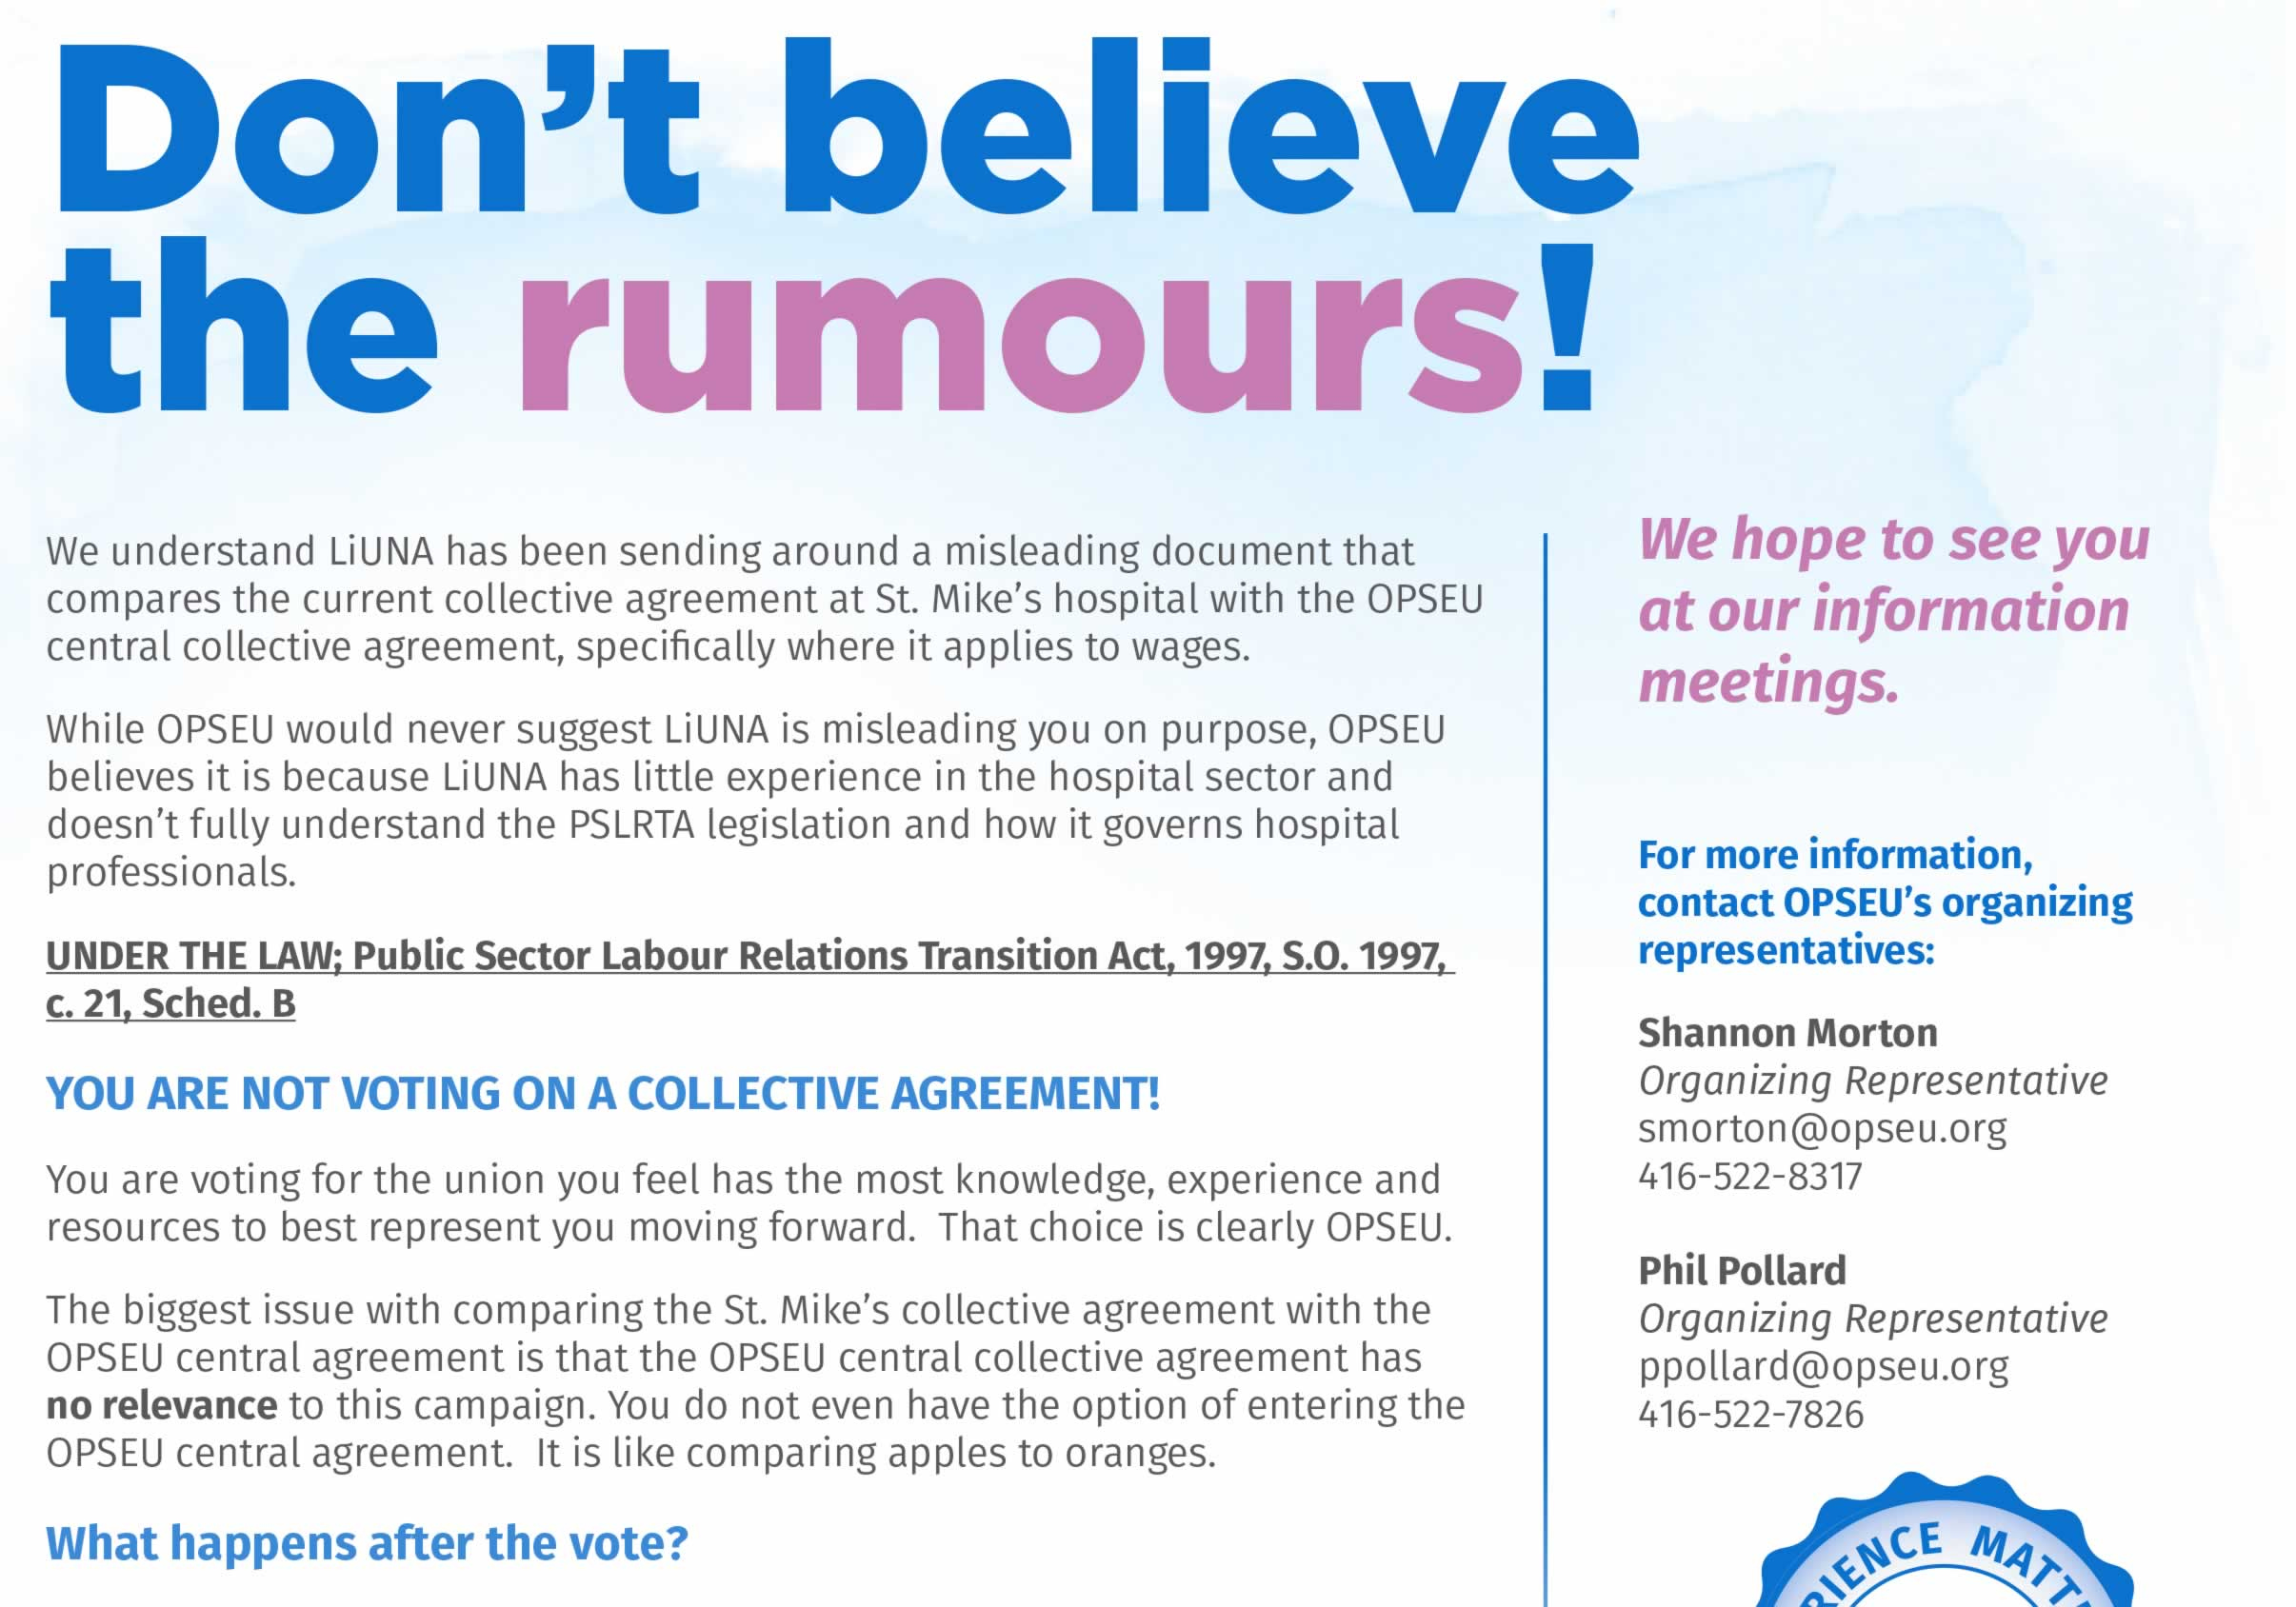 Don't believe the rumours! You are not voting on a collective agreement